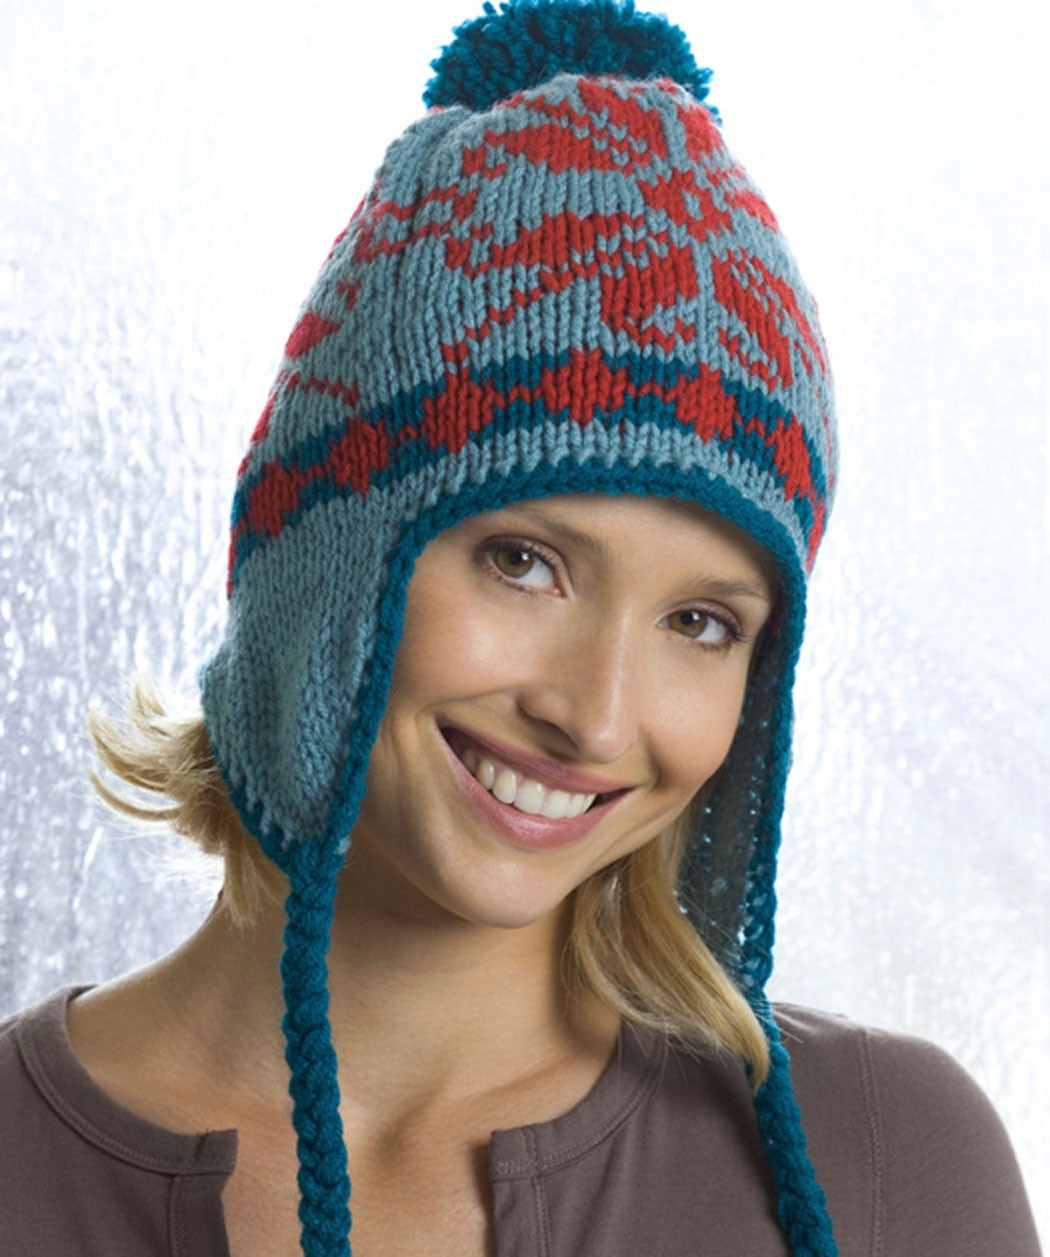 Knitted Hat Patterns With Ear Flaps : Earflap Hat Knitting Pattern A Knitting Blog